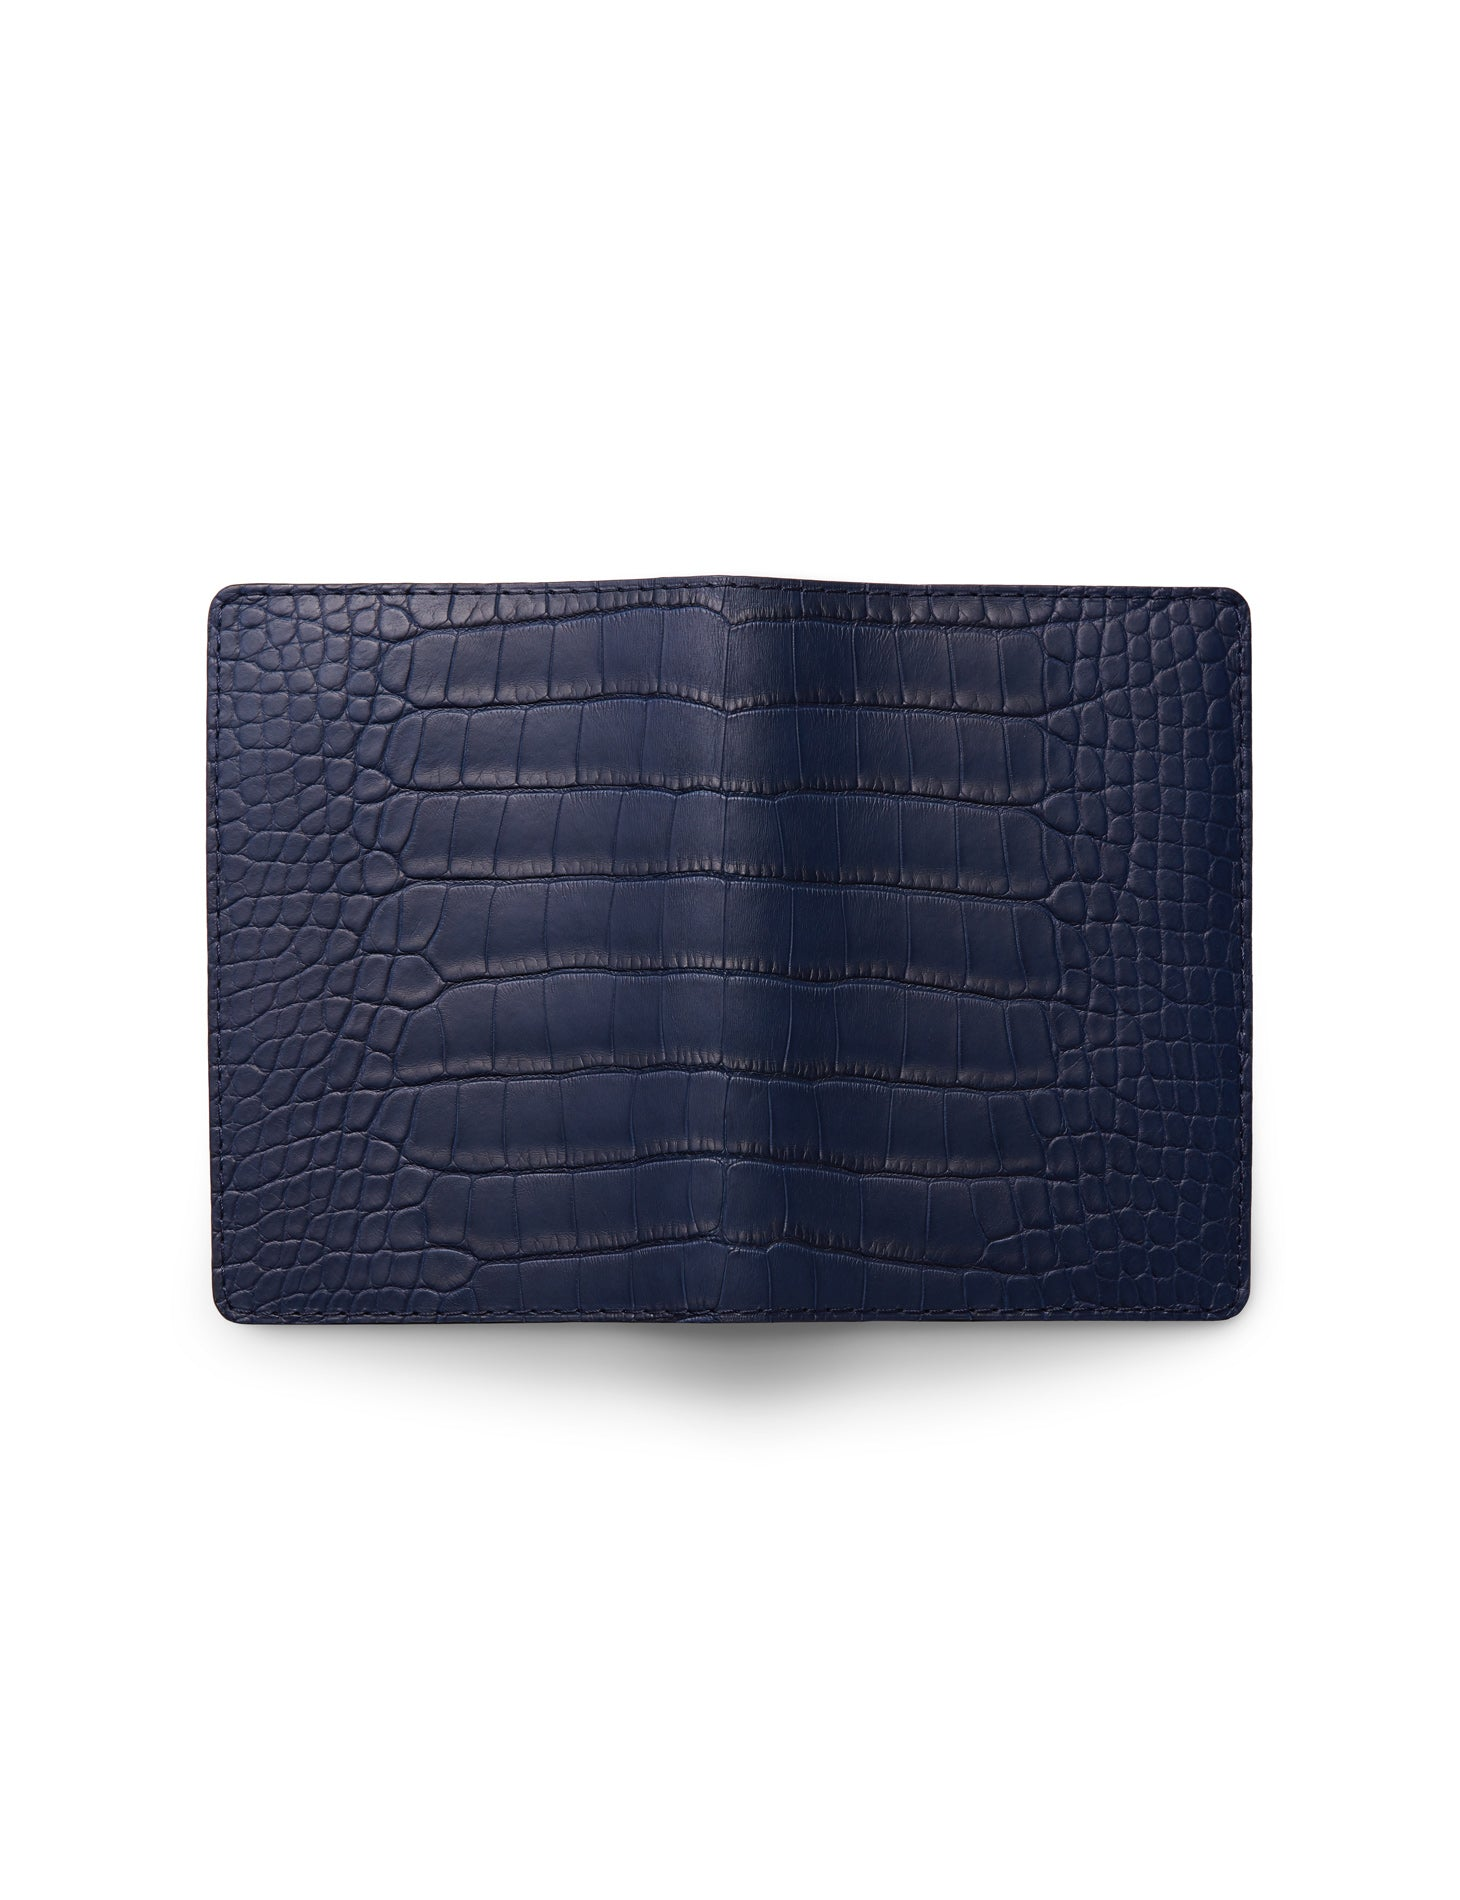 David August Luxury Genuine Alligator Passport Holder in Navy